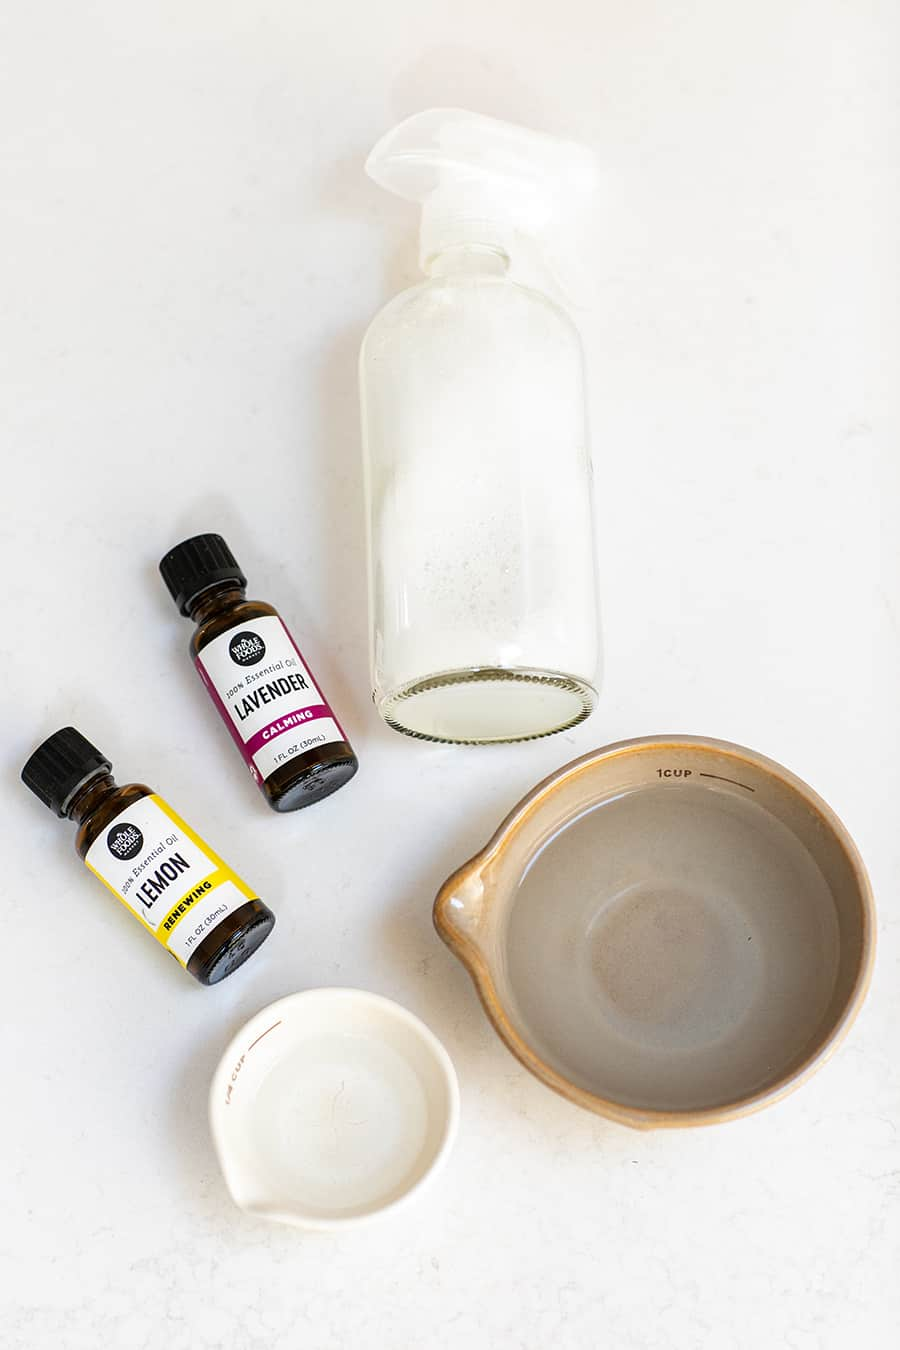 Essential Oils and Supplies to Make Natural Cleaning Products